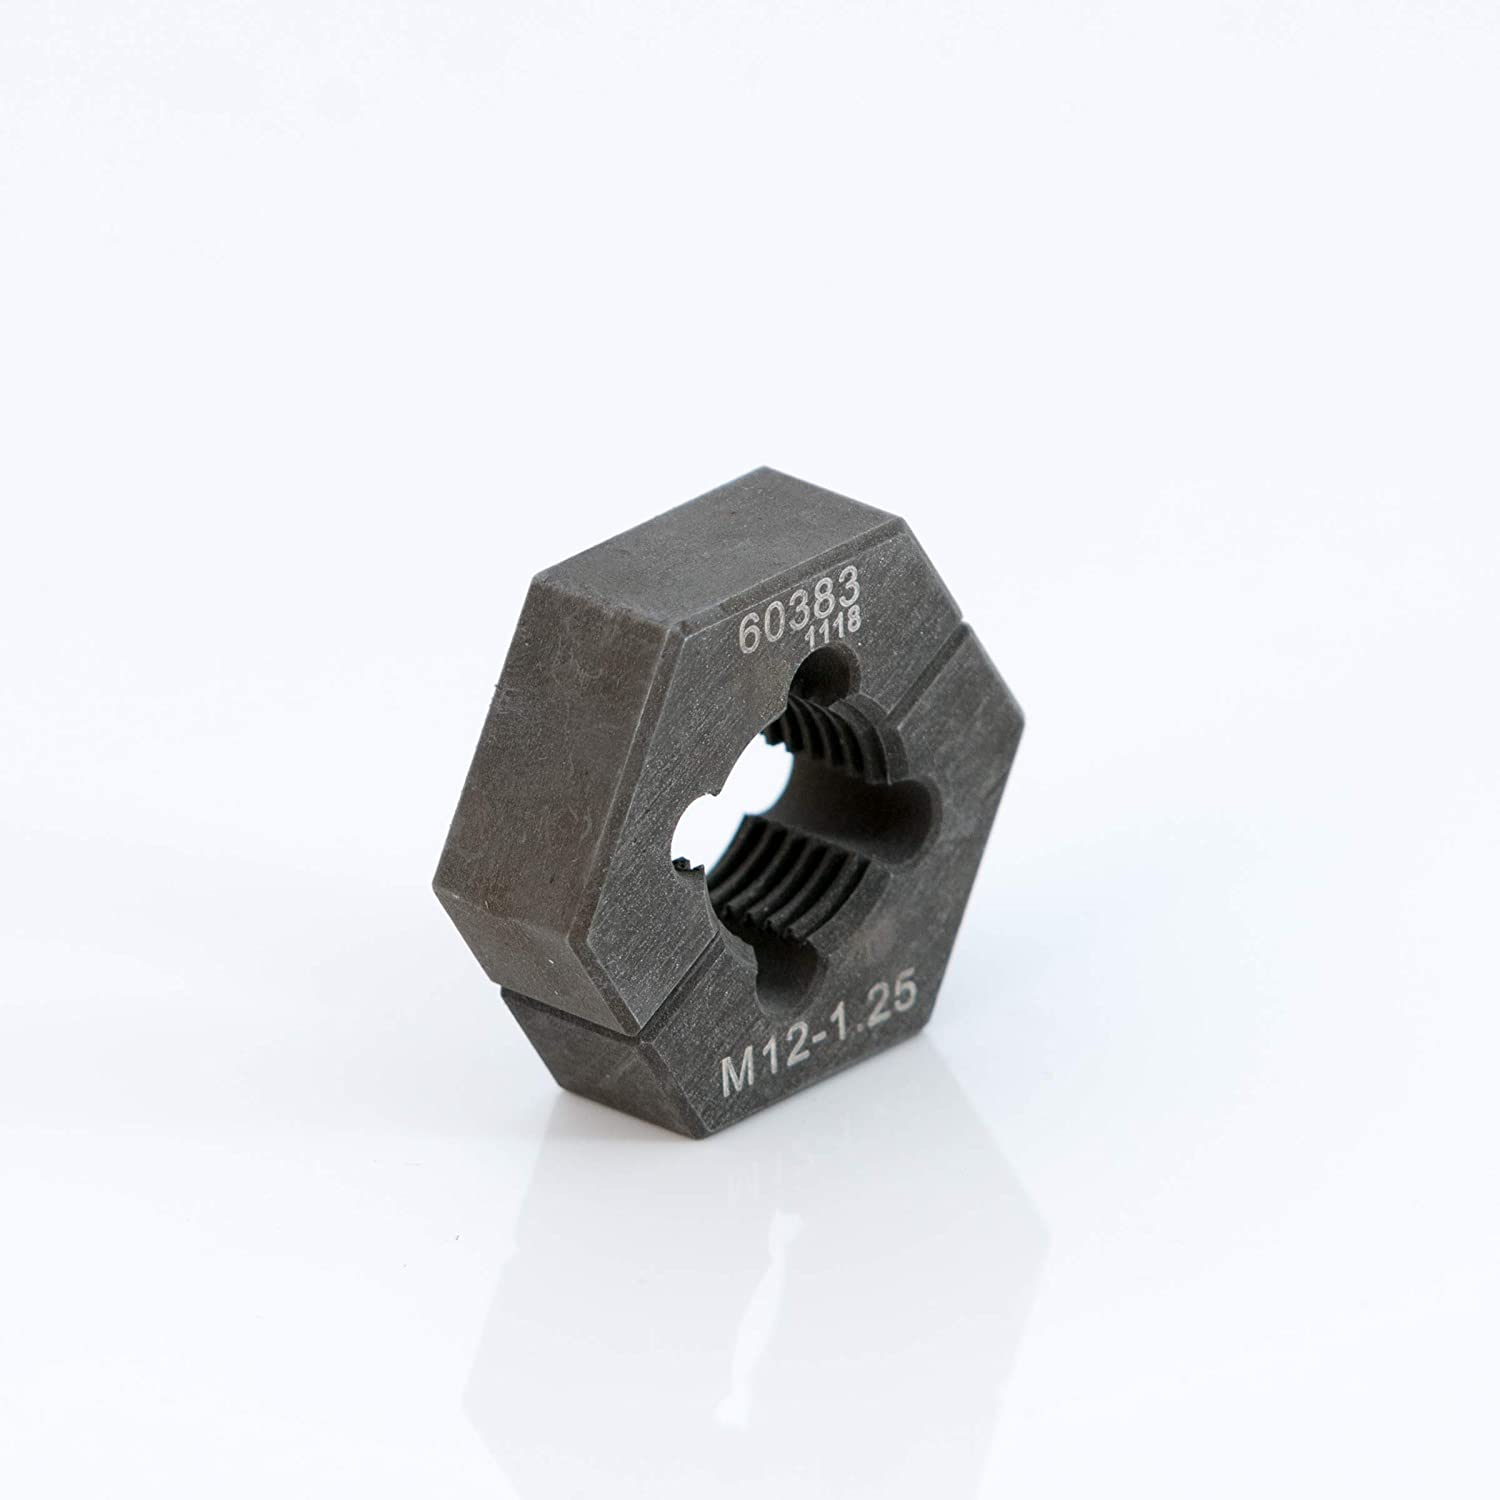 Steelman Professional M12-1.25 Metric Split Die Thread Chaser, Indexing Pins, Steel, Repairs Threads on Wheel Studs and Bolts